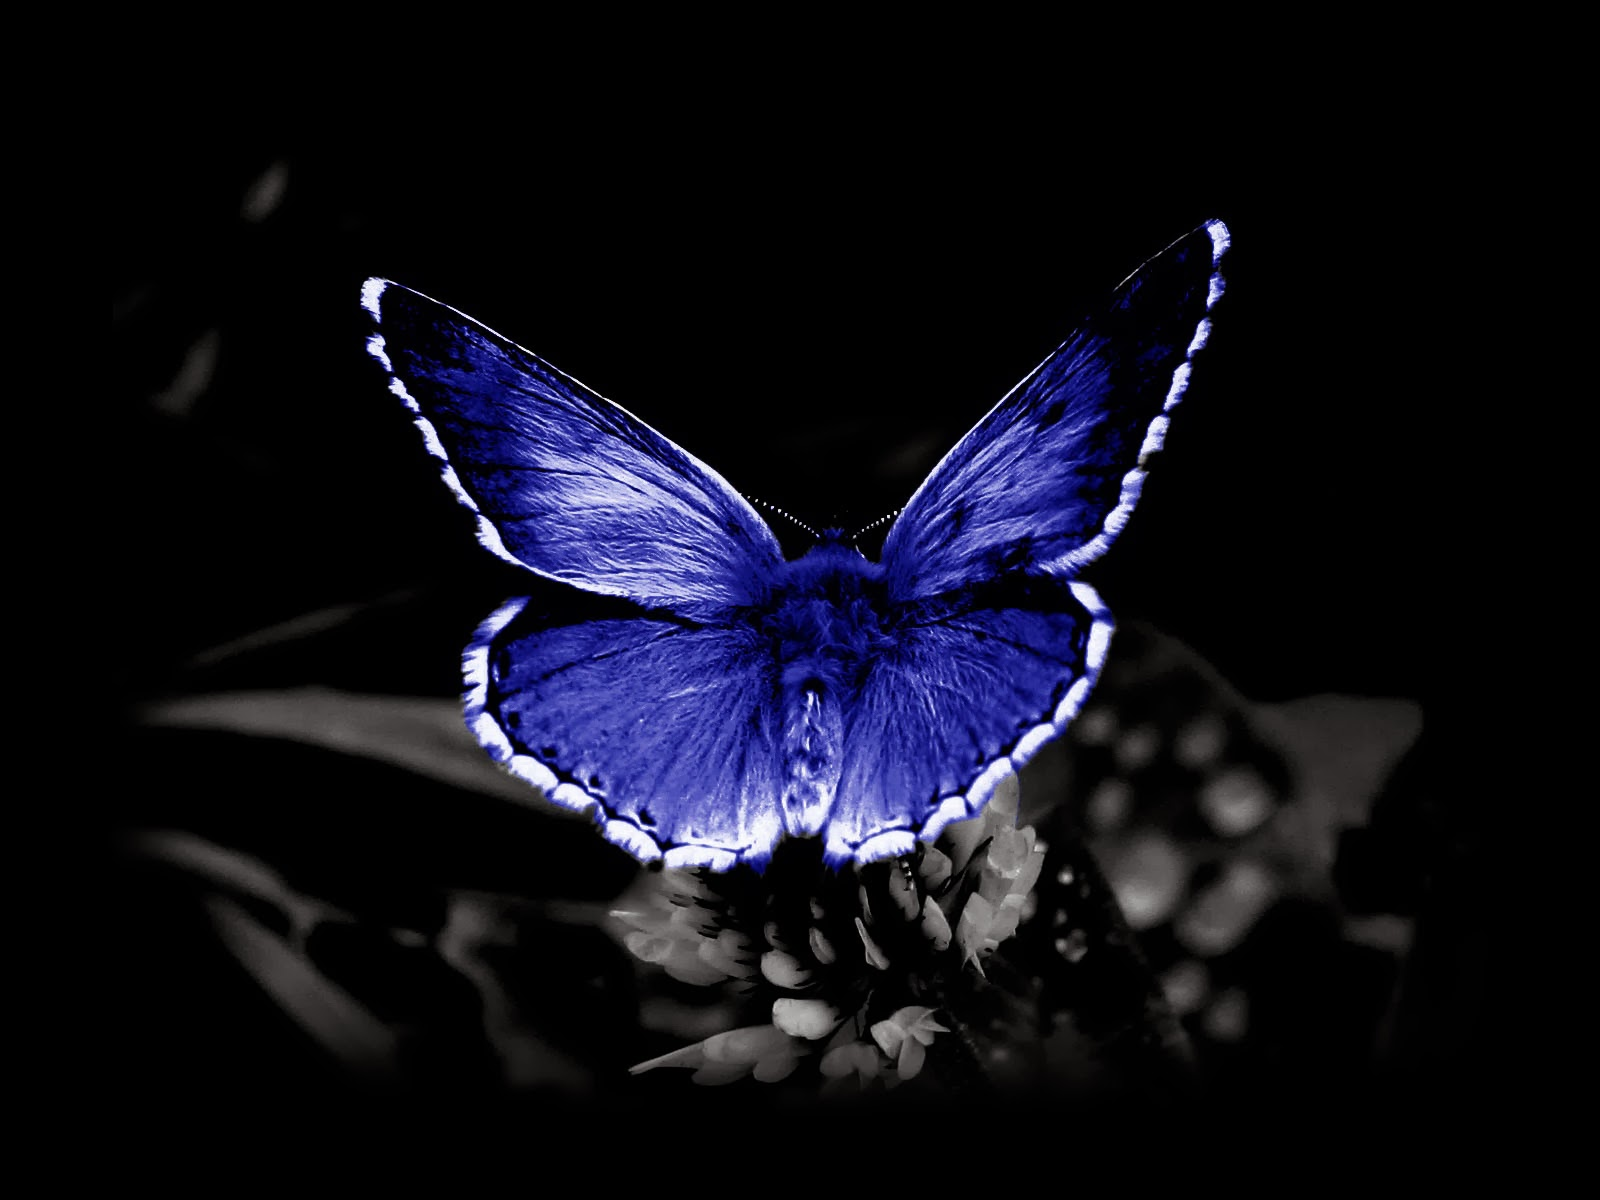 wallpapers Butterfly Desktop Backgrounds 1600x1200